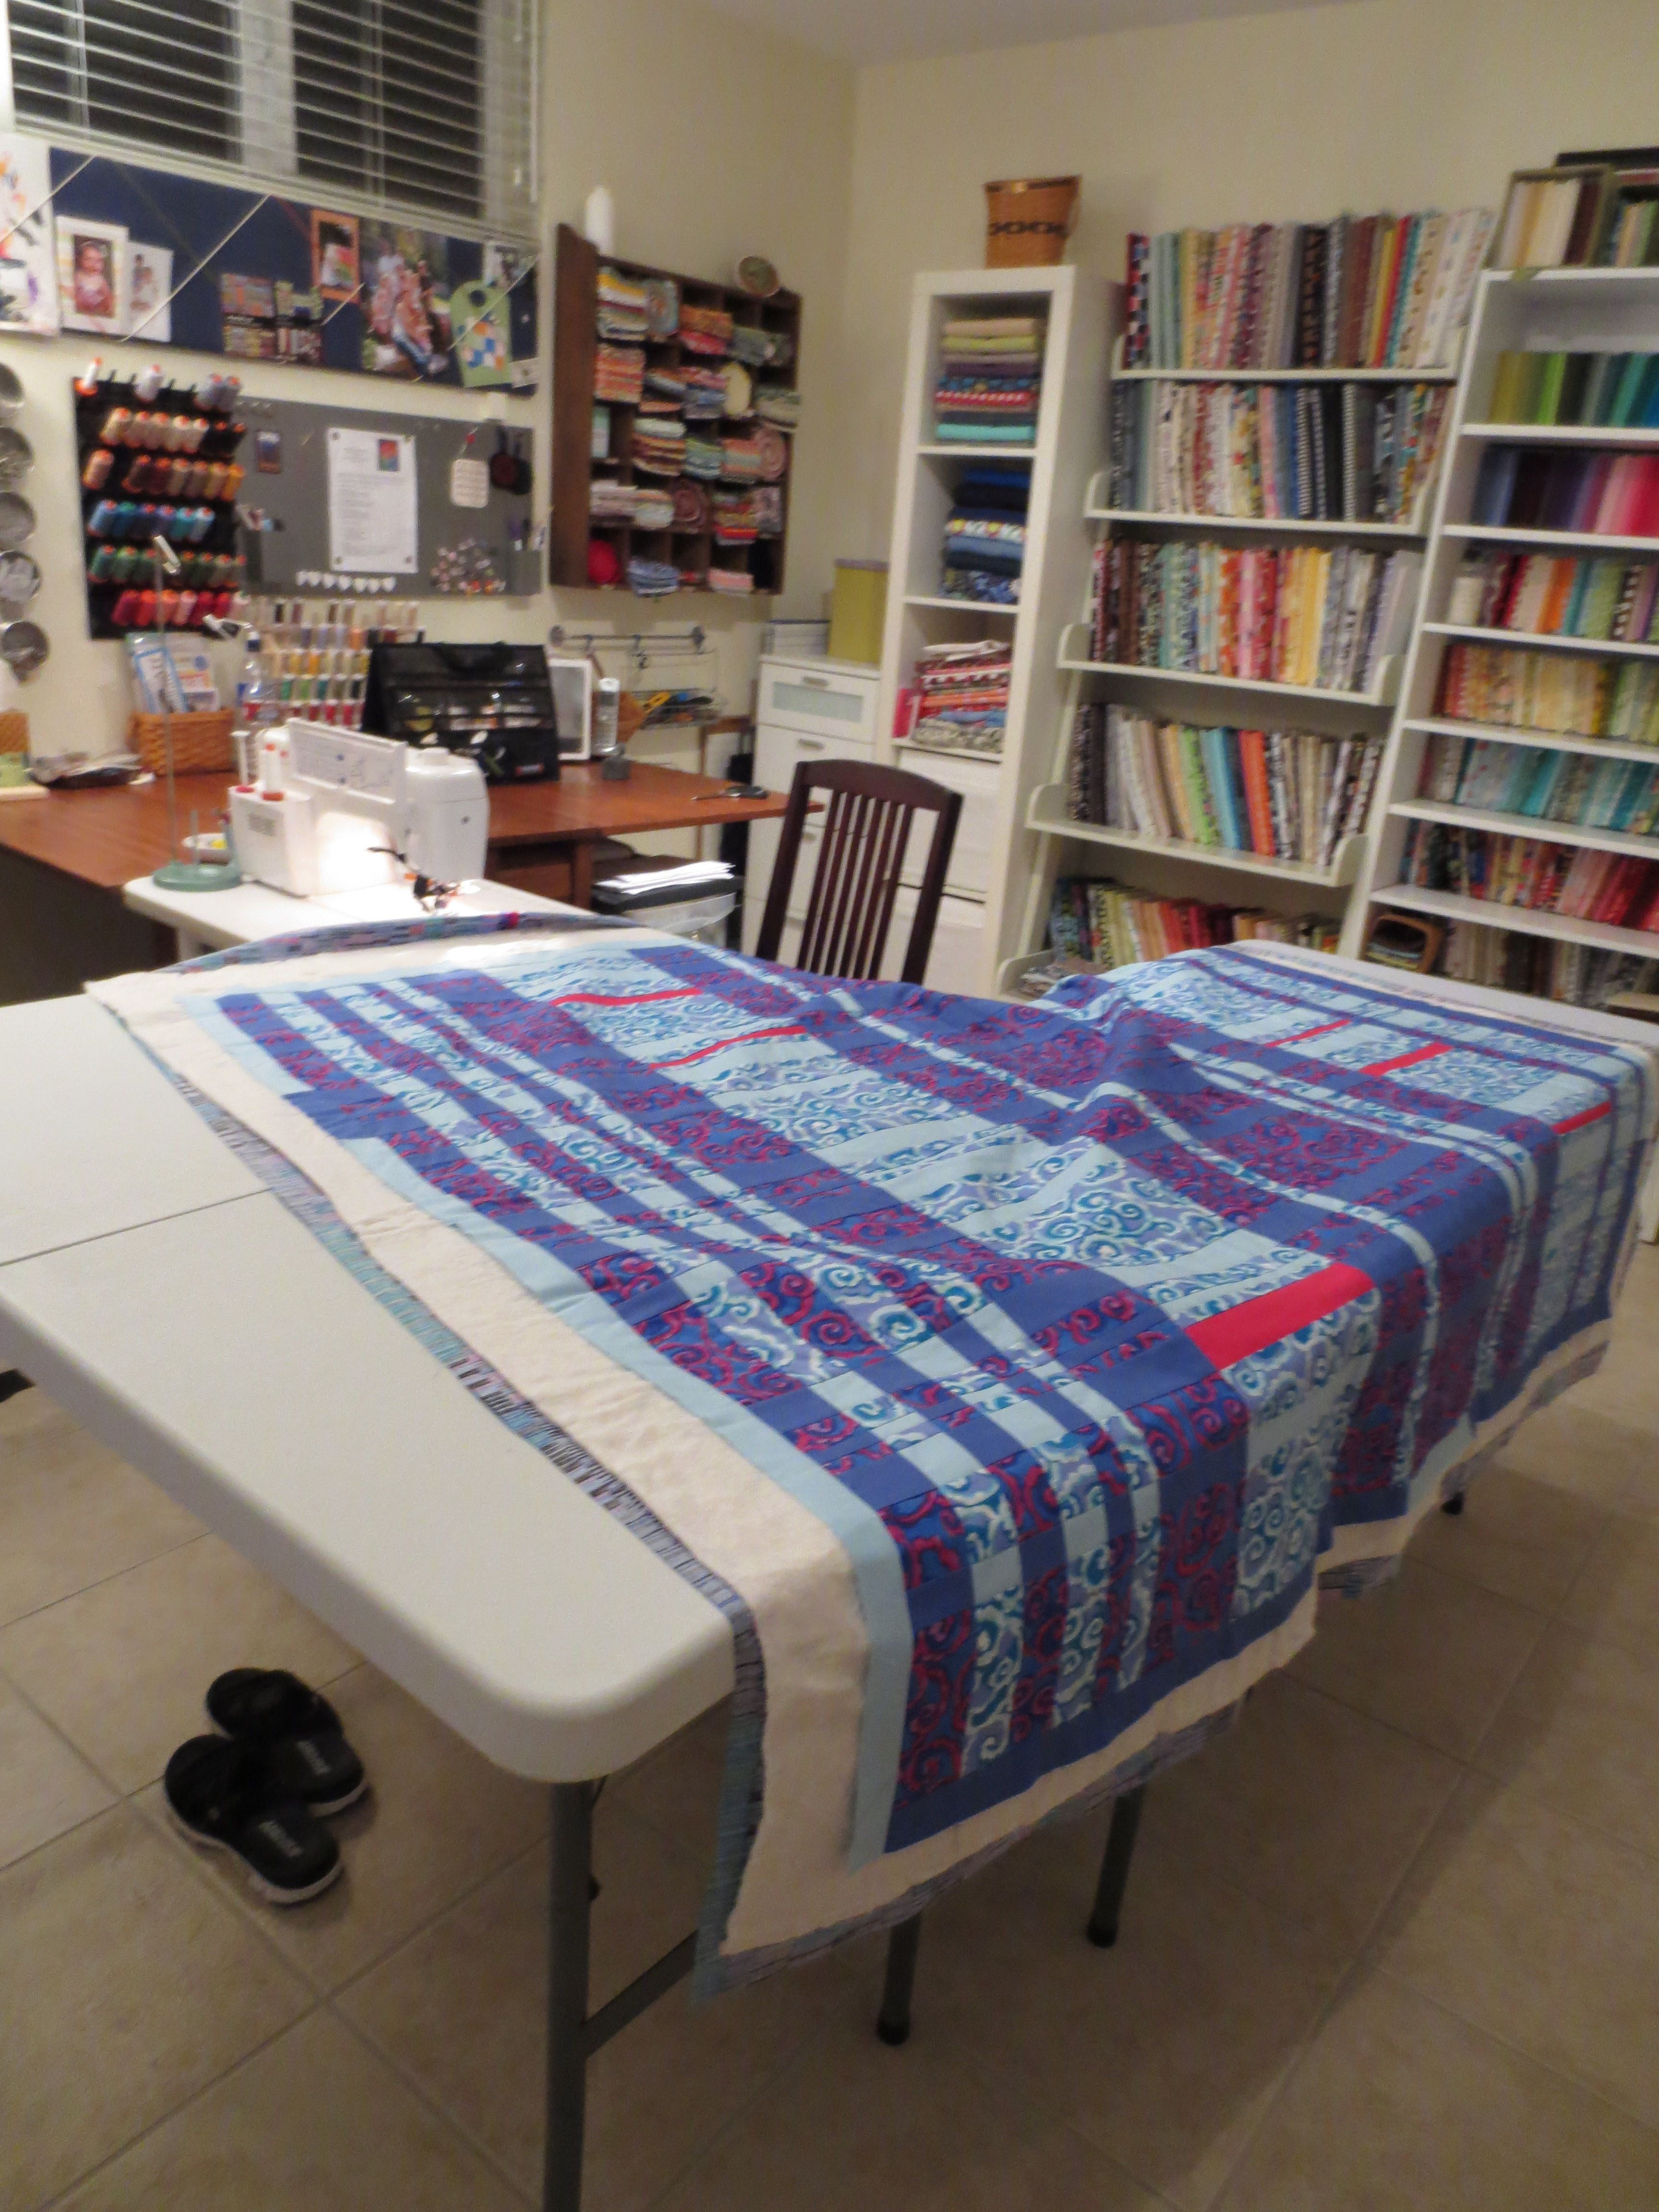 10x10 Room Layout Craft: Jibberish Designs Quilt Studio Instead Of Having A Table